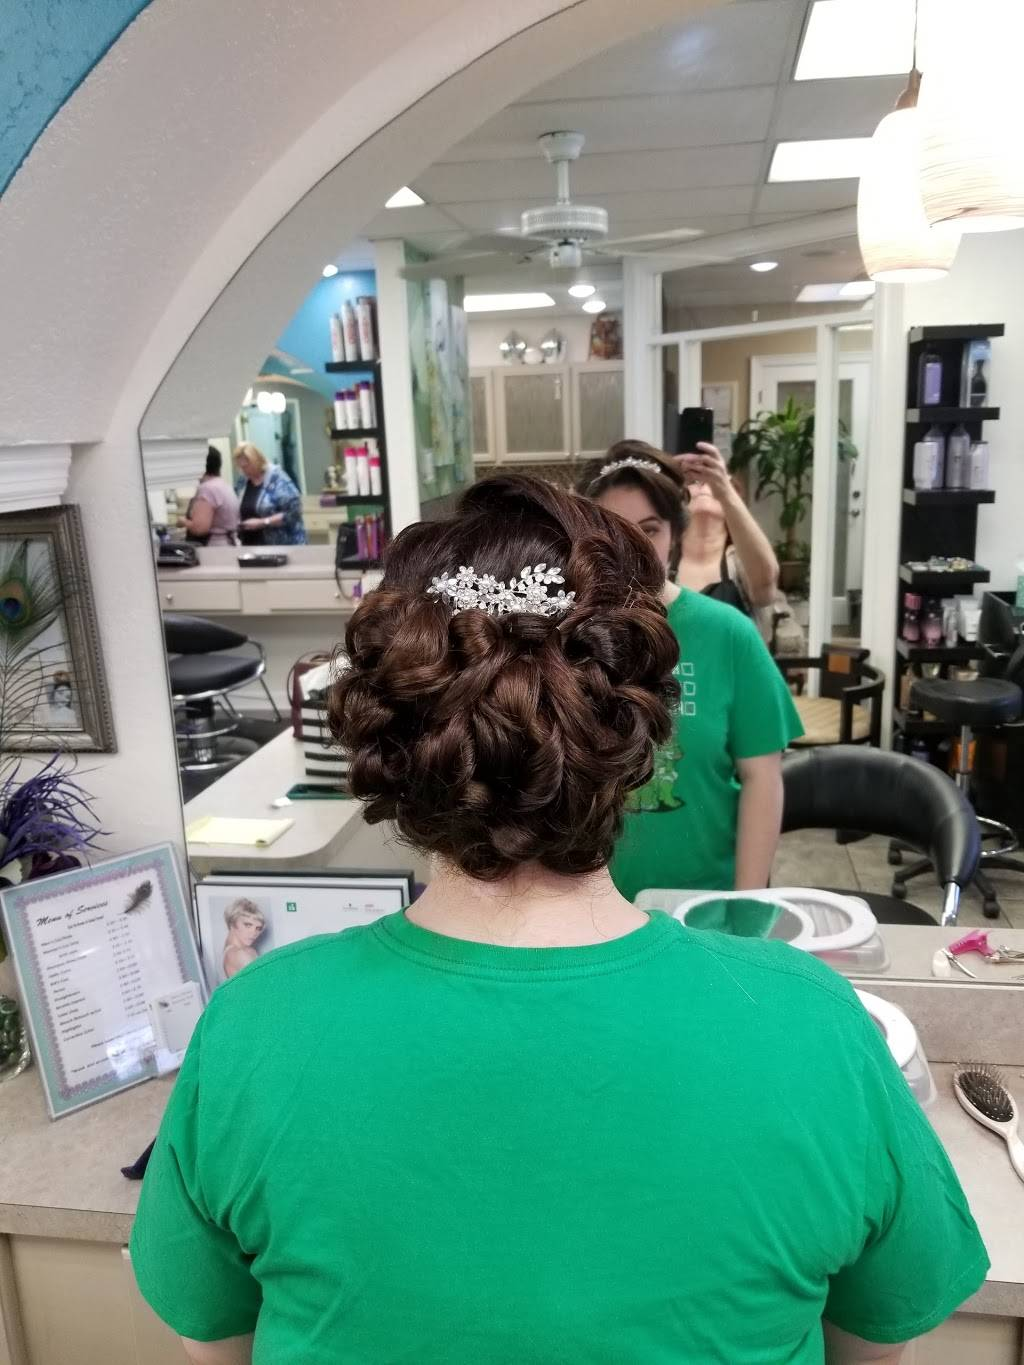 Pavone Salon & Spa - hair care  | Photo 6 of 9 | Address: 6151 Central Ave, St. Petersburg, FL 33710, USA | Phone: (727) 256-0475